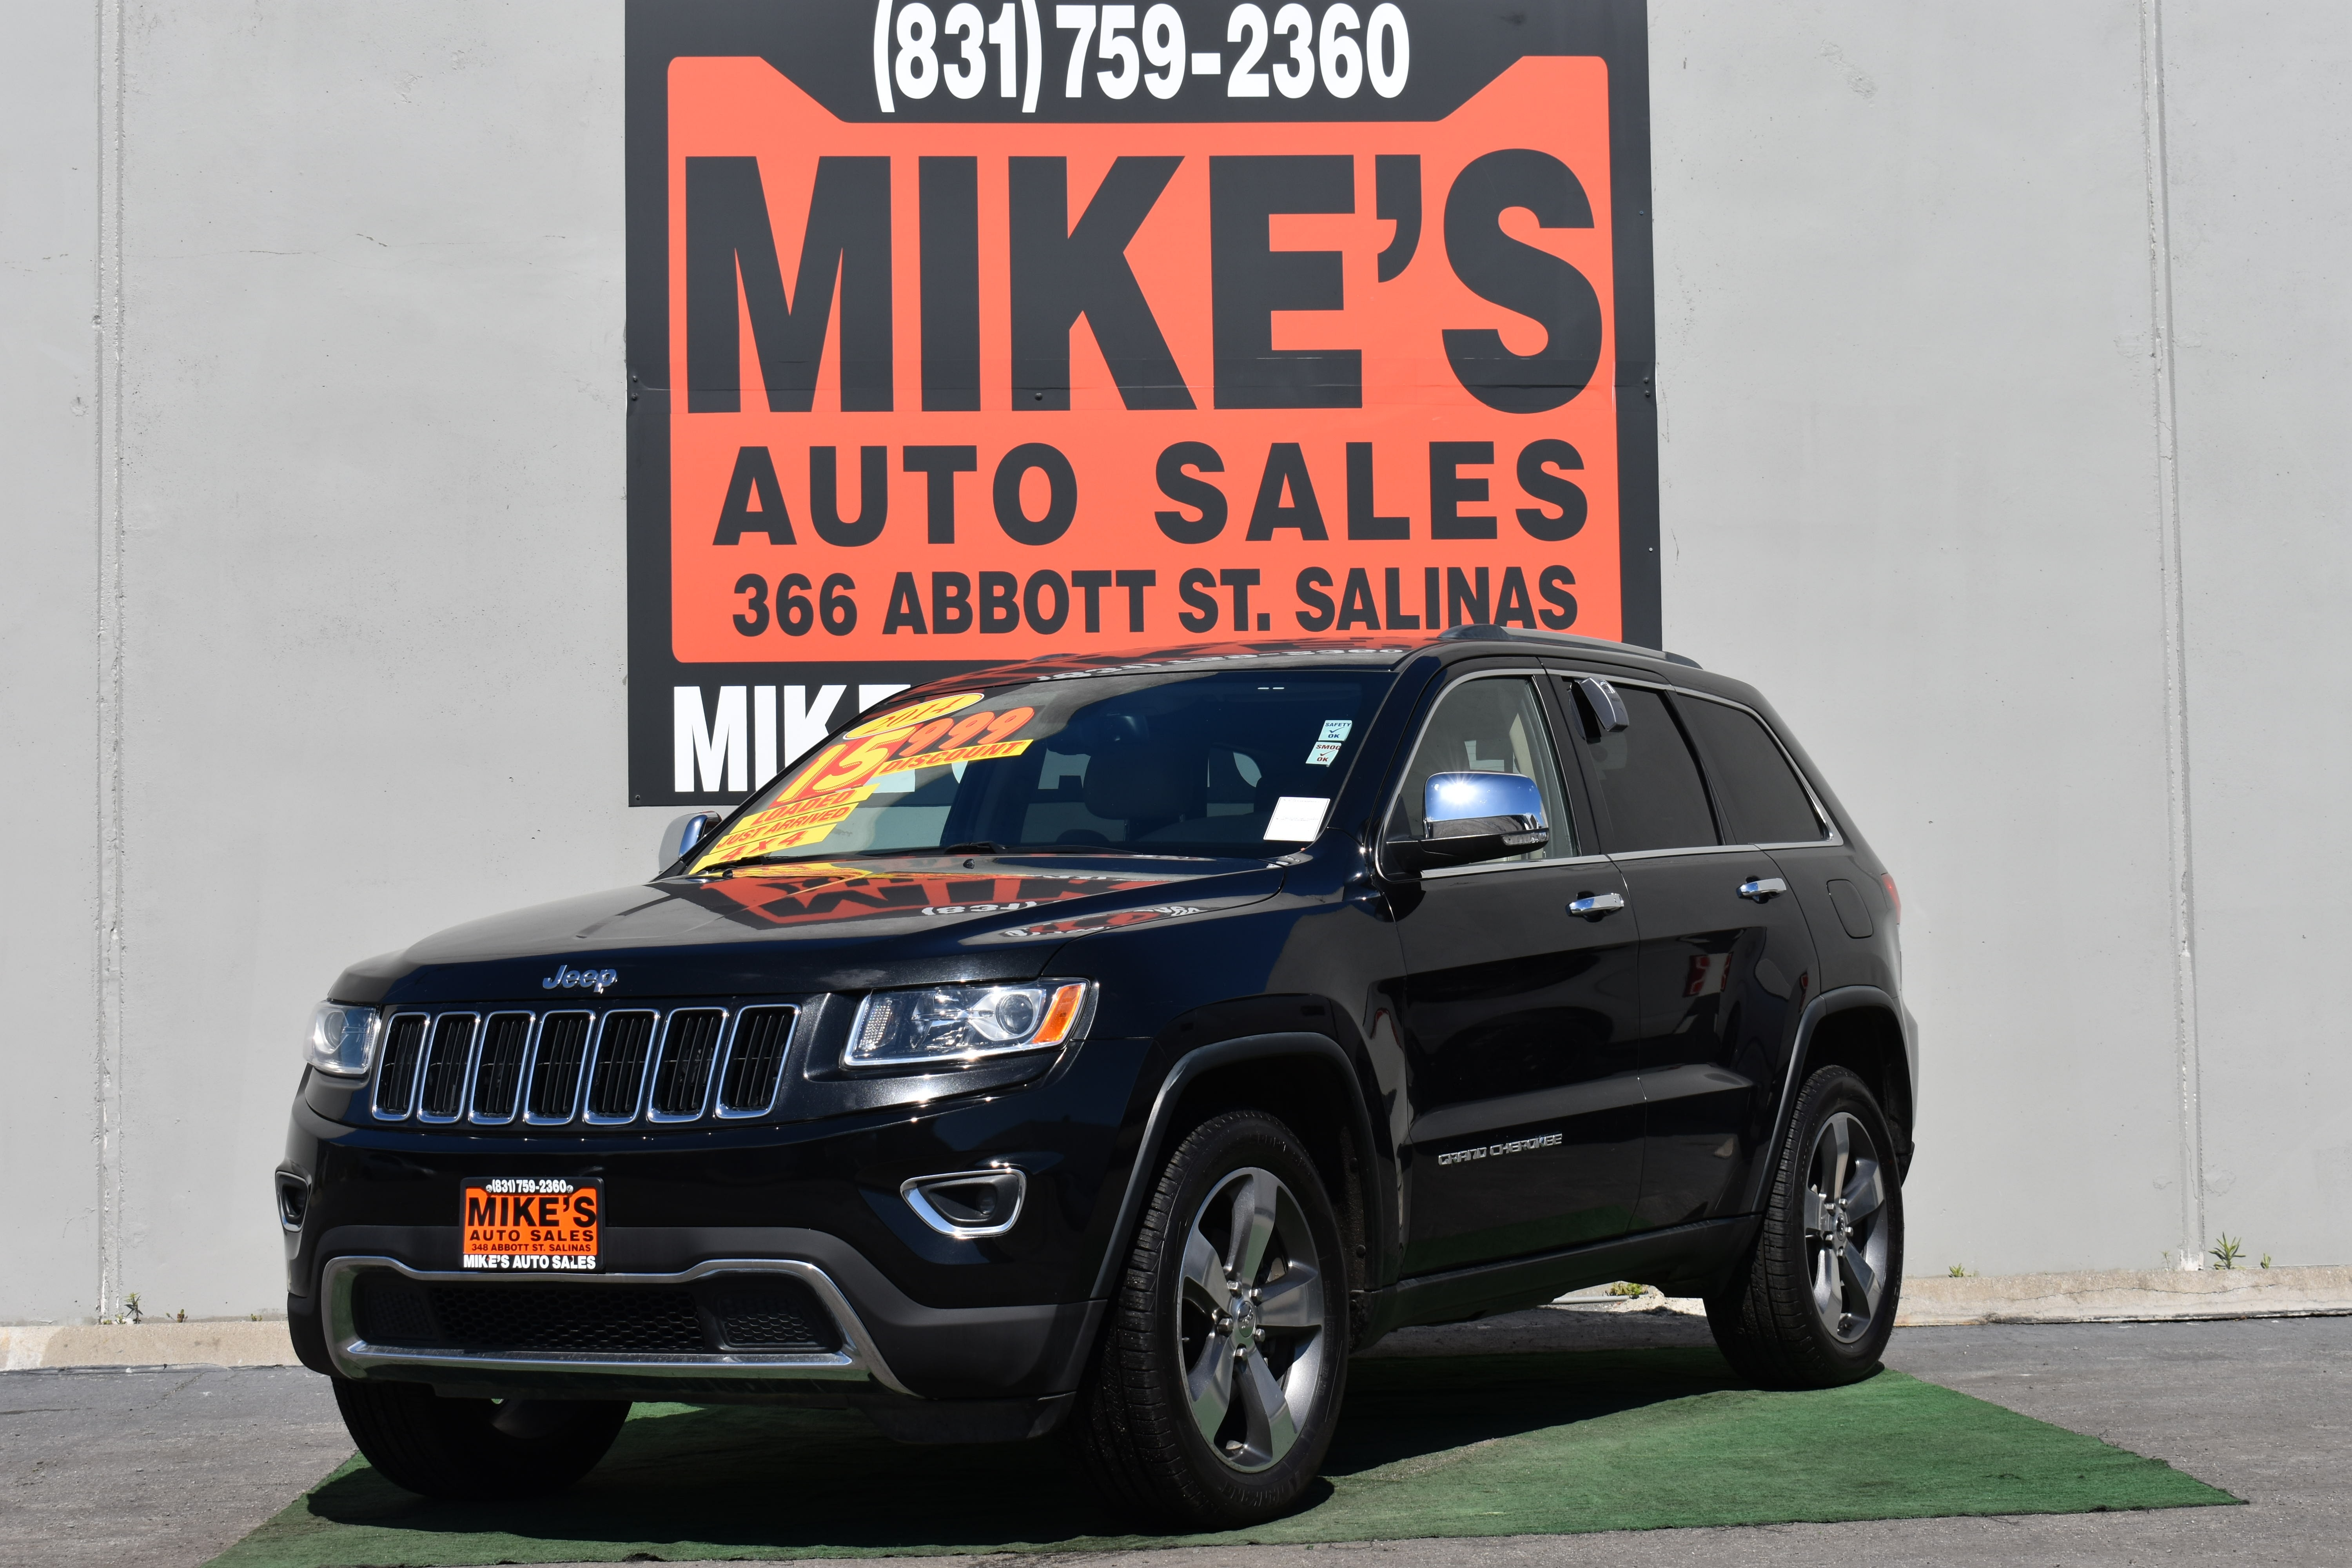 2014 Jeep Grand Cherokee 4WD 4dr Limited in Salinas, CA